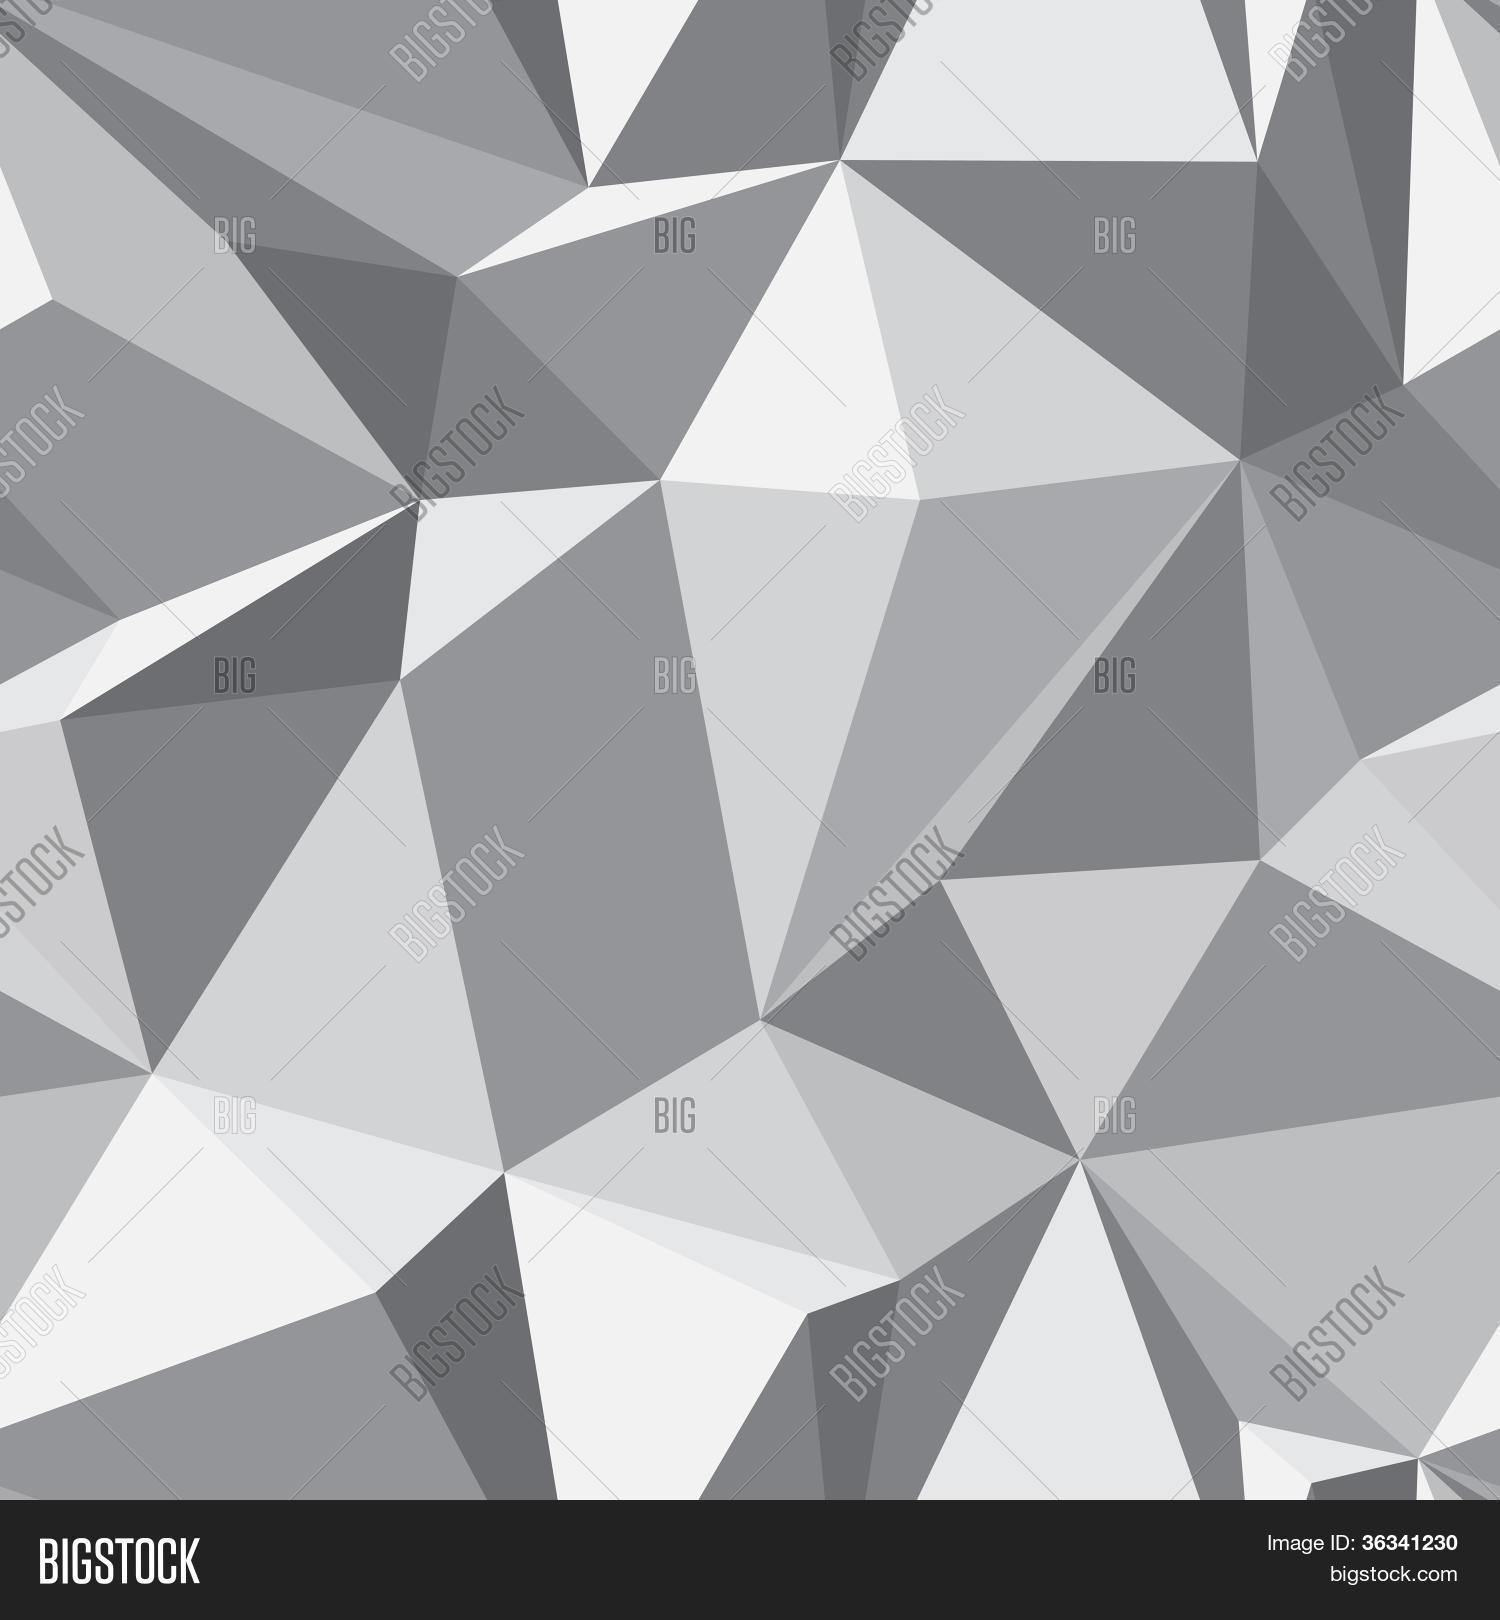 stock photo bigstock vector image background in world diamond polygon map